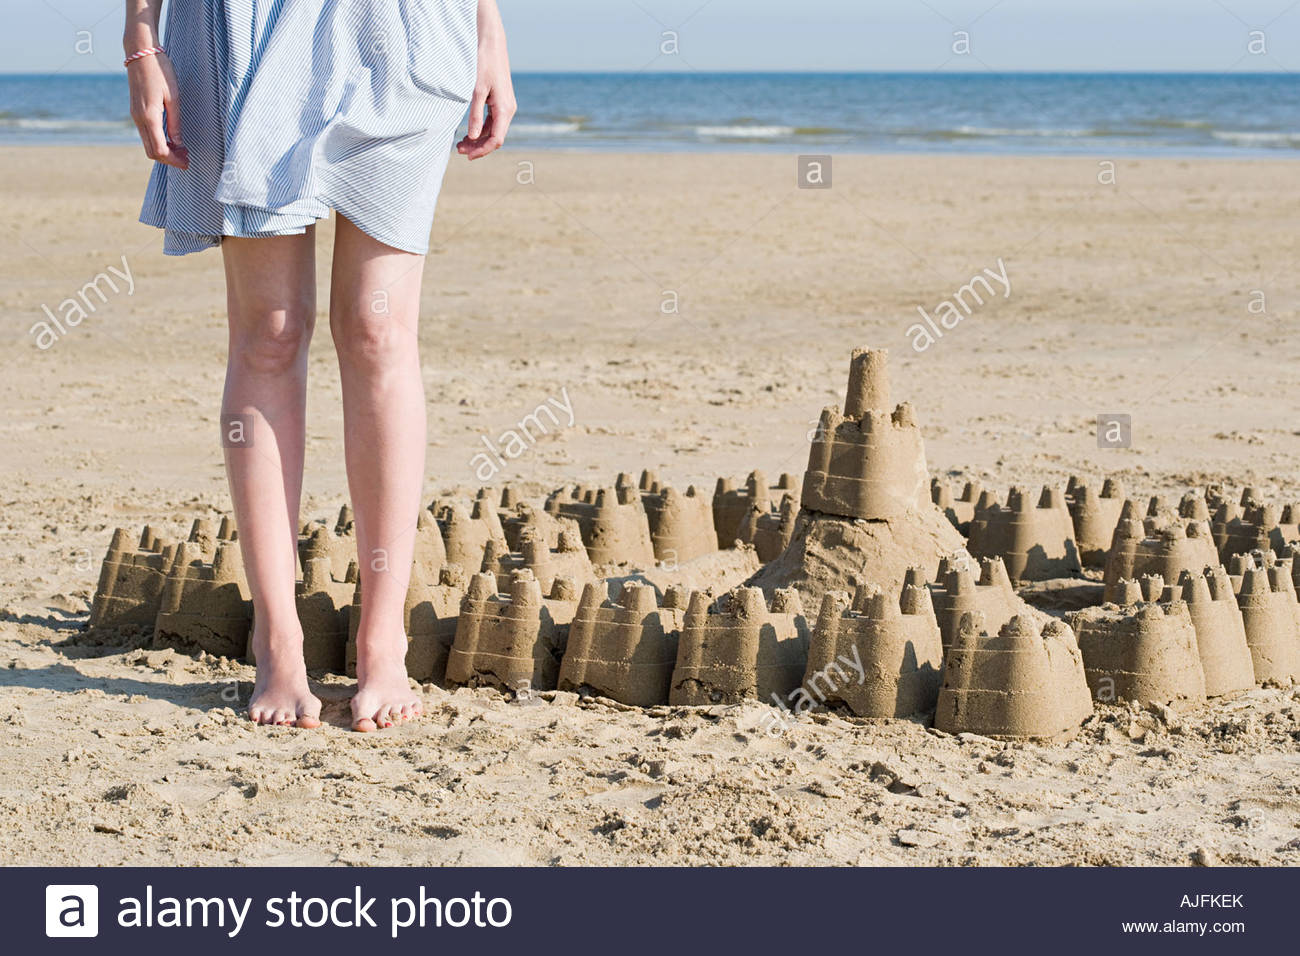 Woman stood next sandcastle - Stock Image